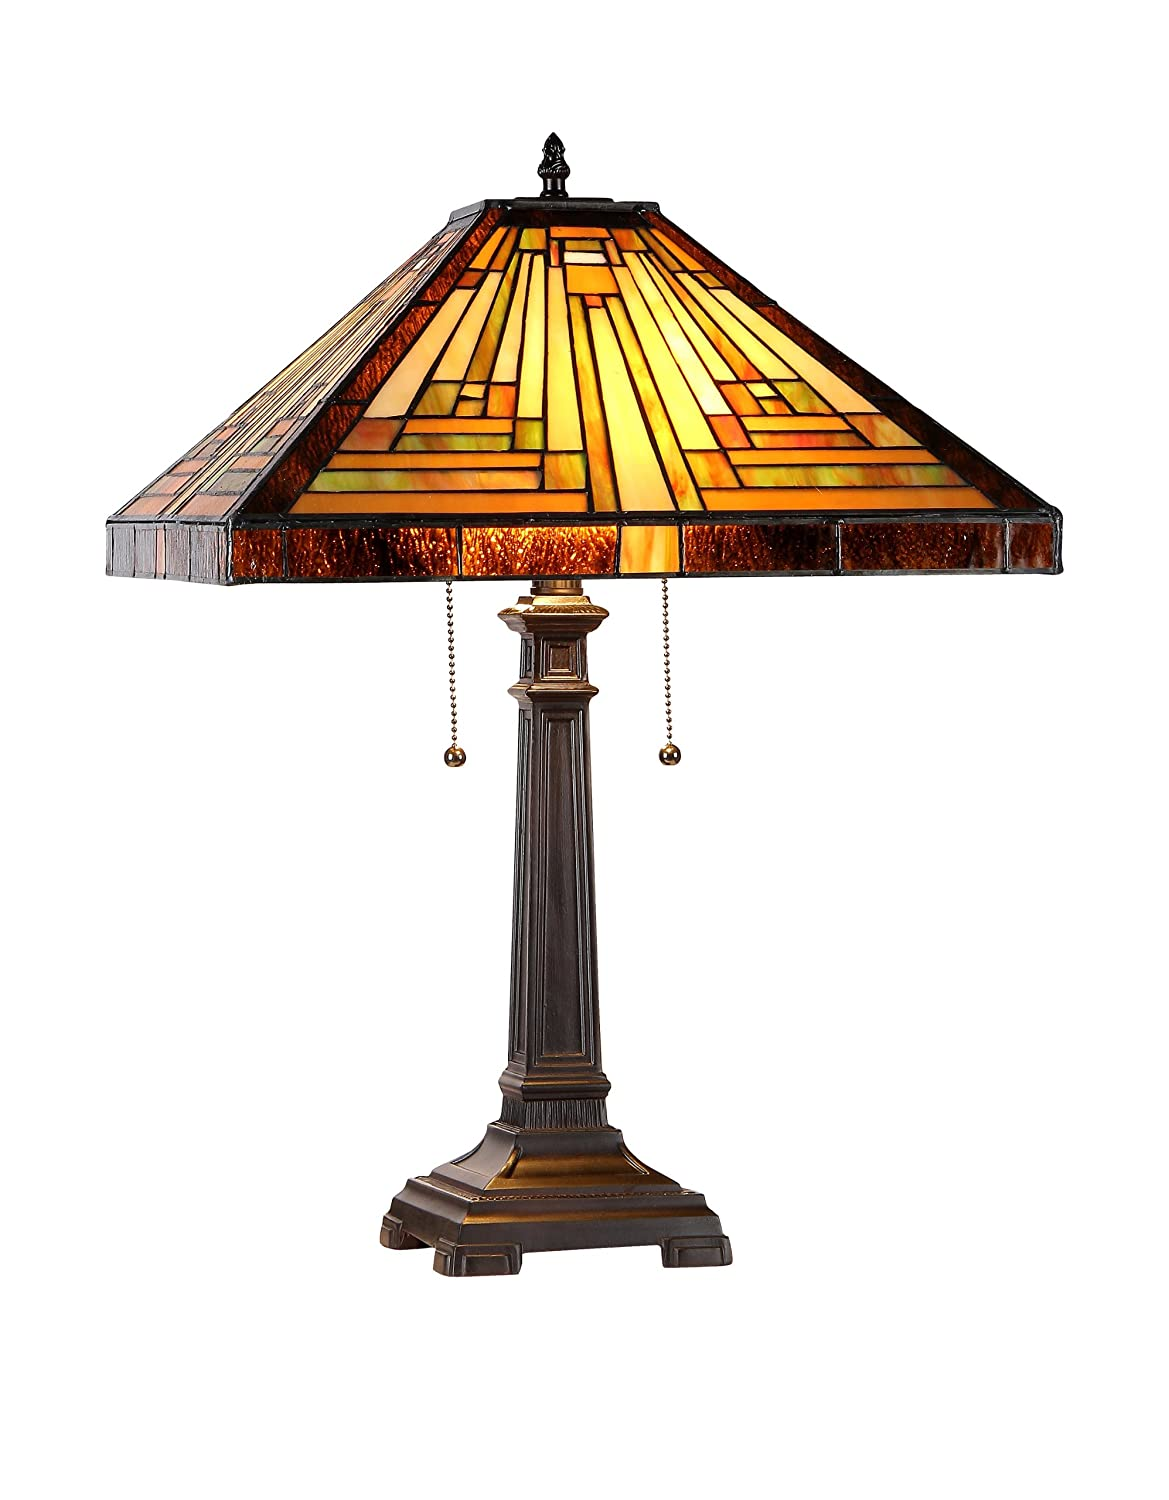 Chloe lighting ch33359mr16 tl2 innes tiffany style mission 2 light chloe lighting ch33359mr16 tl2 innes tiffany style mission 2 light table lamp 16 inch shade tiffany style table lamps amazon geotapseo Choice Image